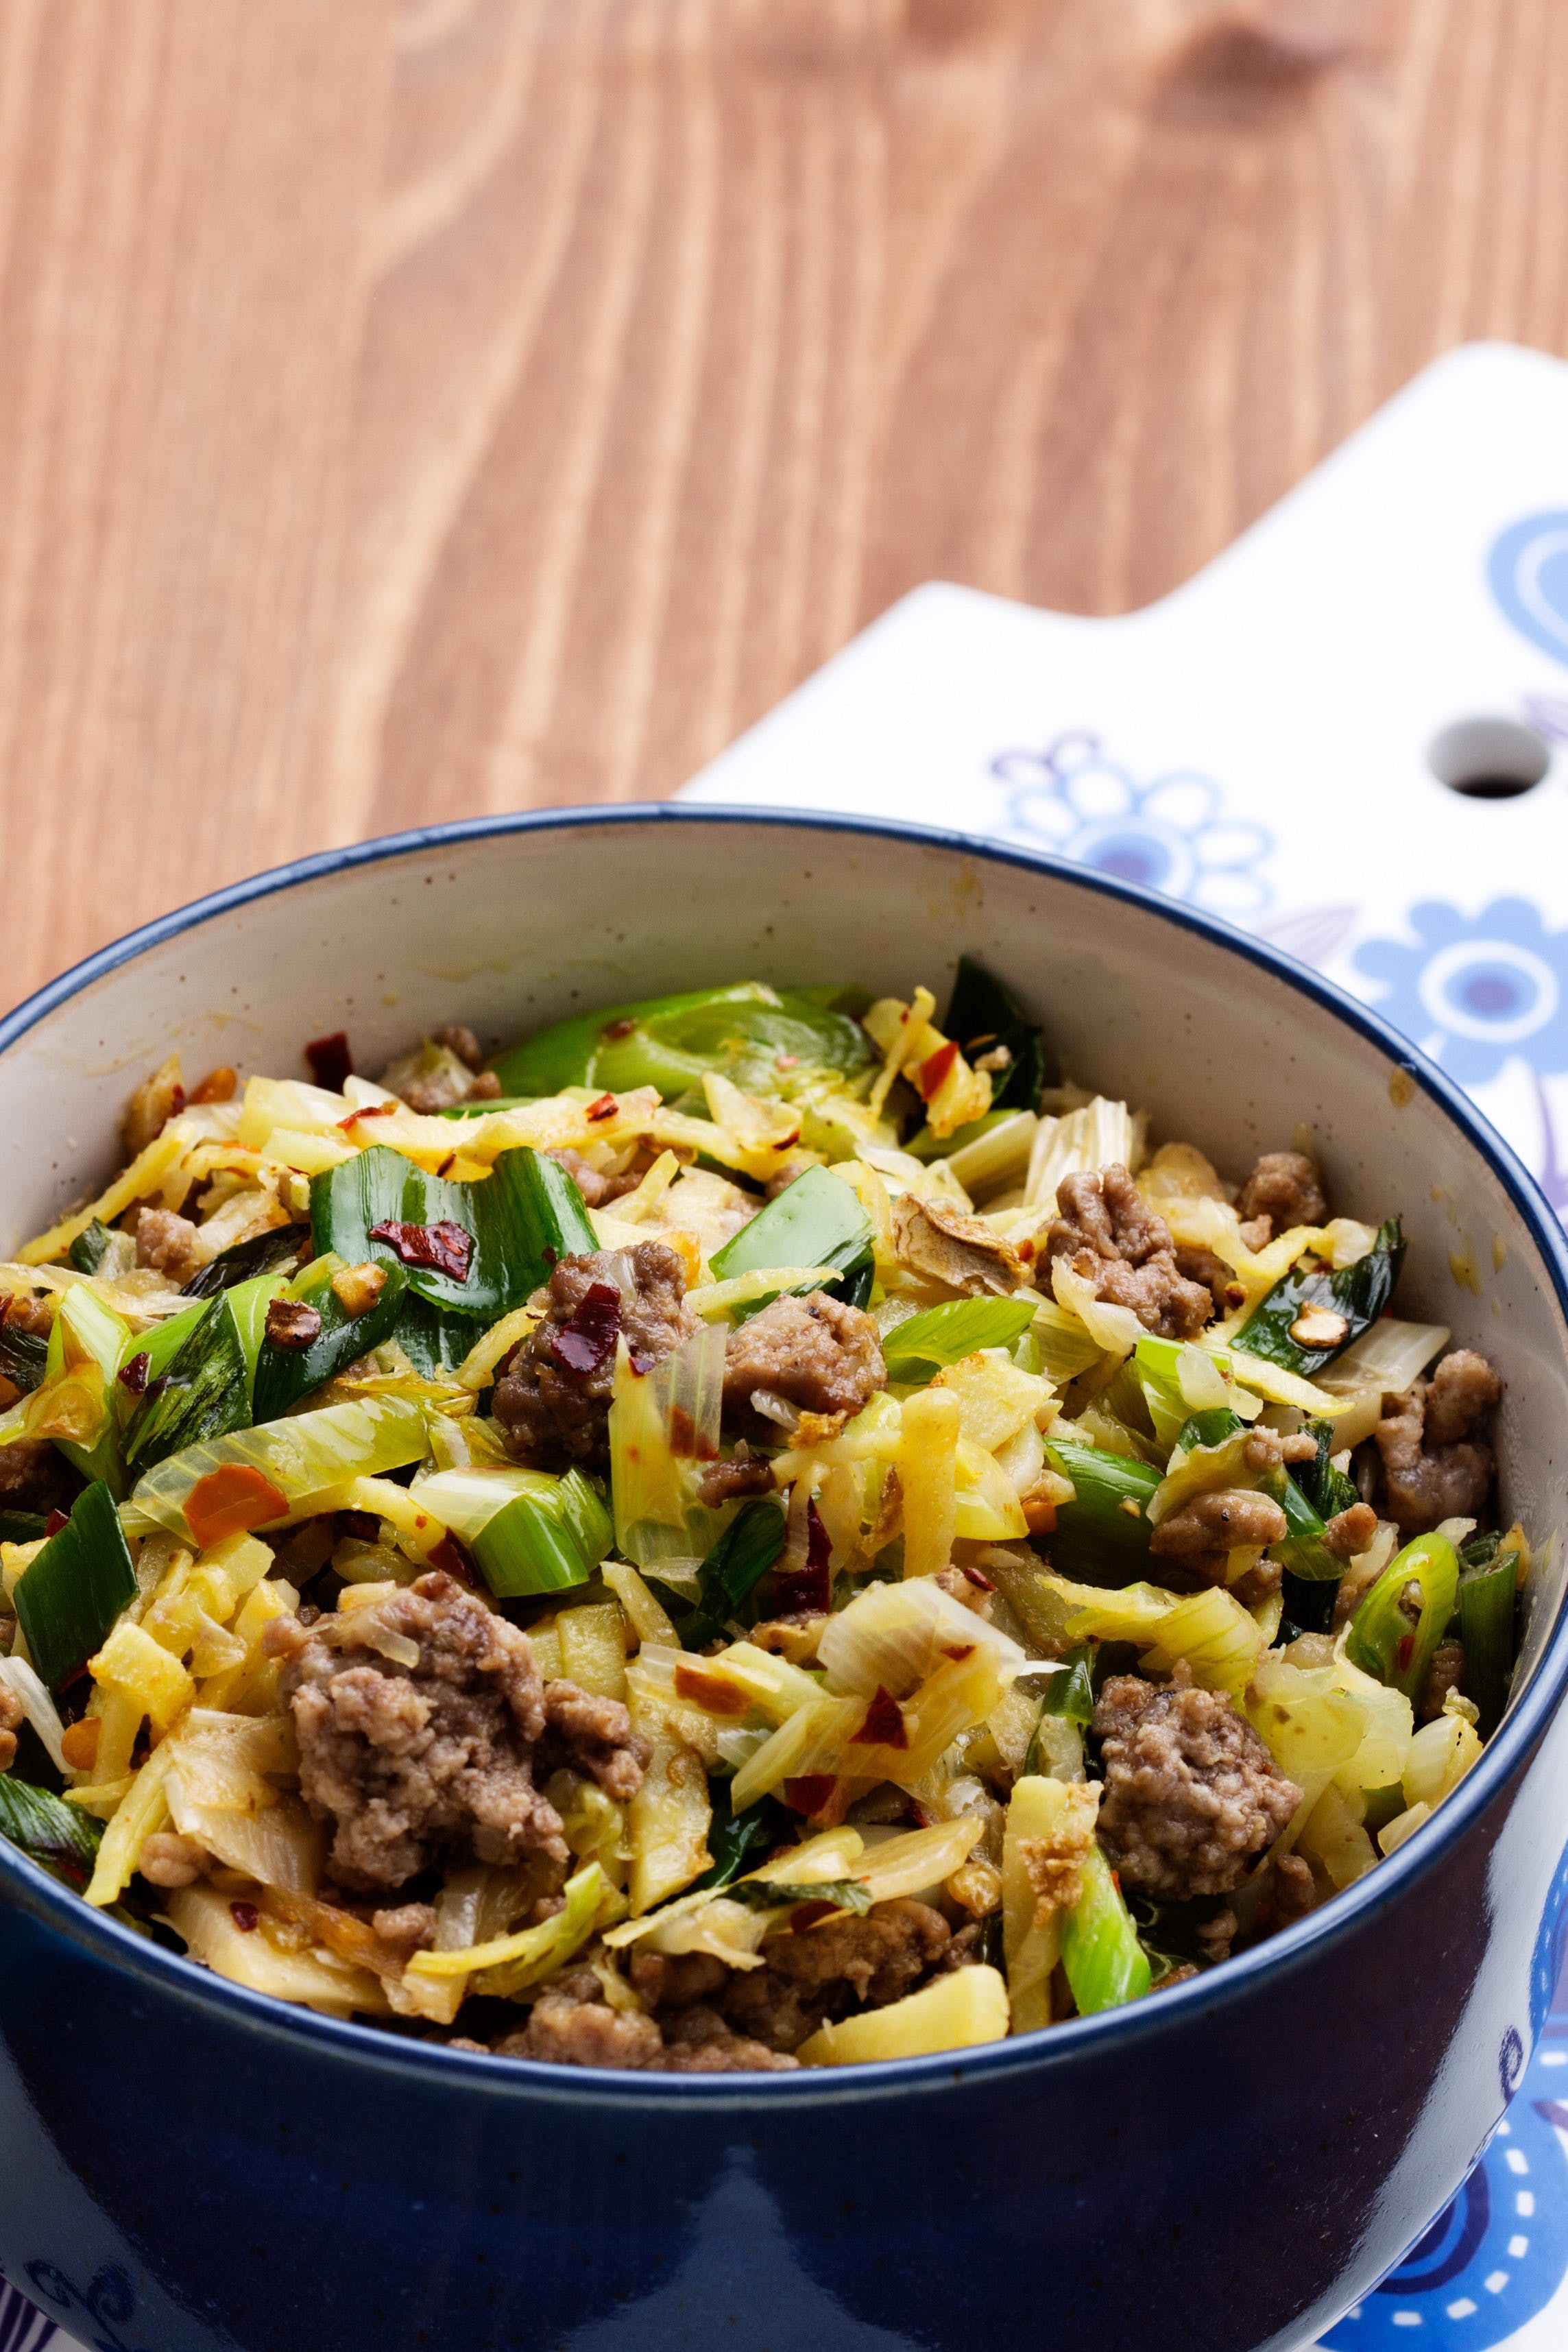 Keto Asian cabbage stir-fry<br />(Dinner)